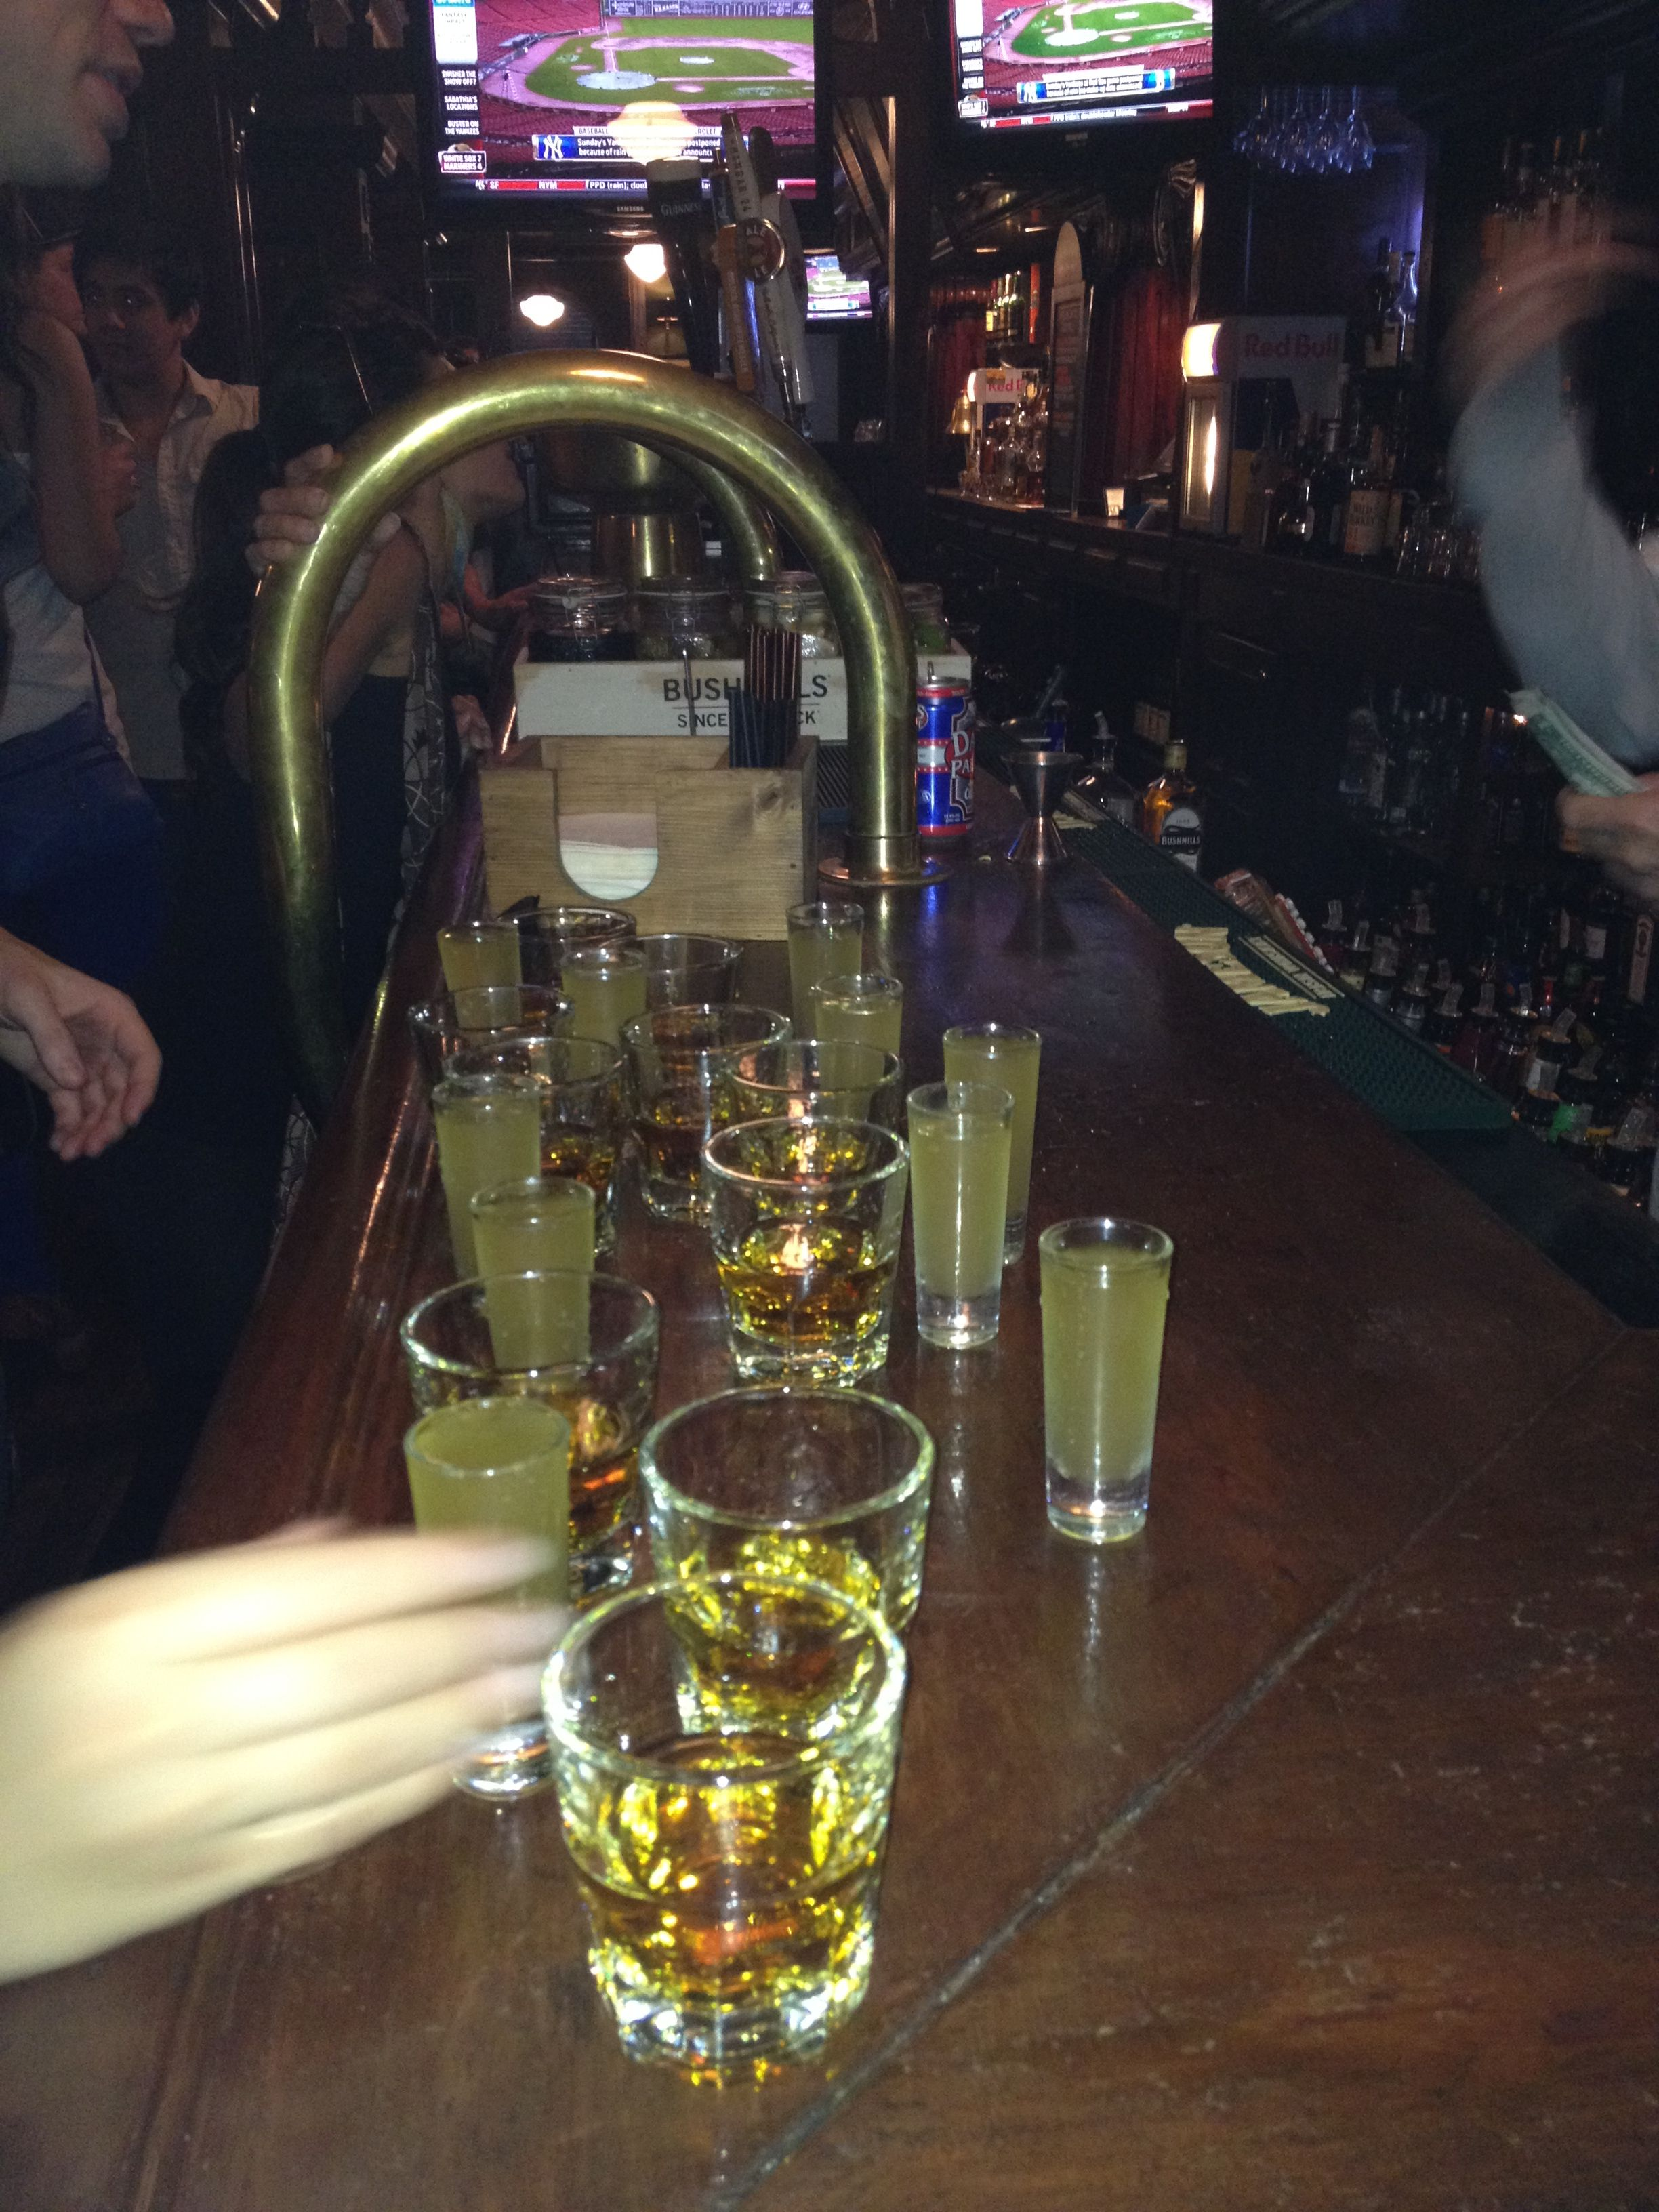 Jameson shot with a homemade pickle juice back so good